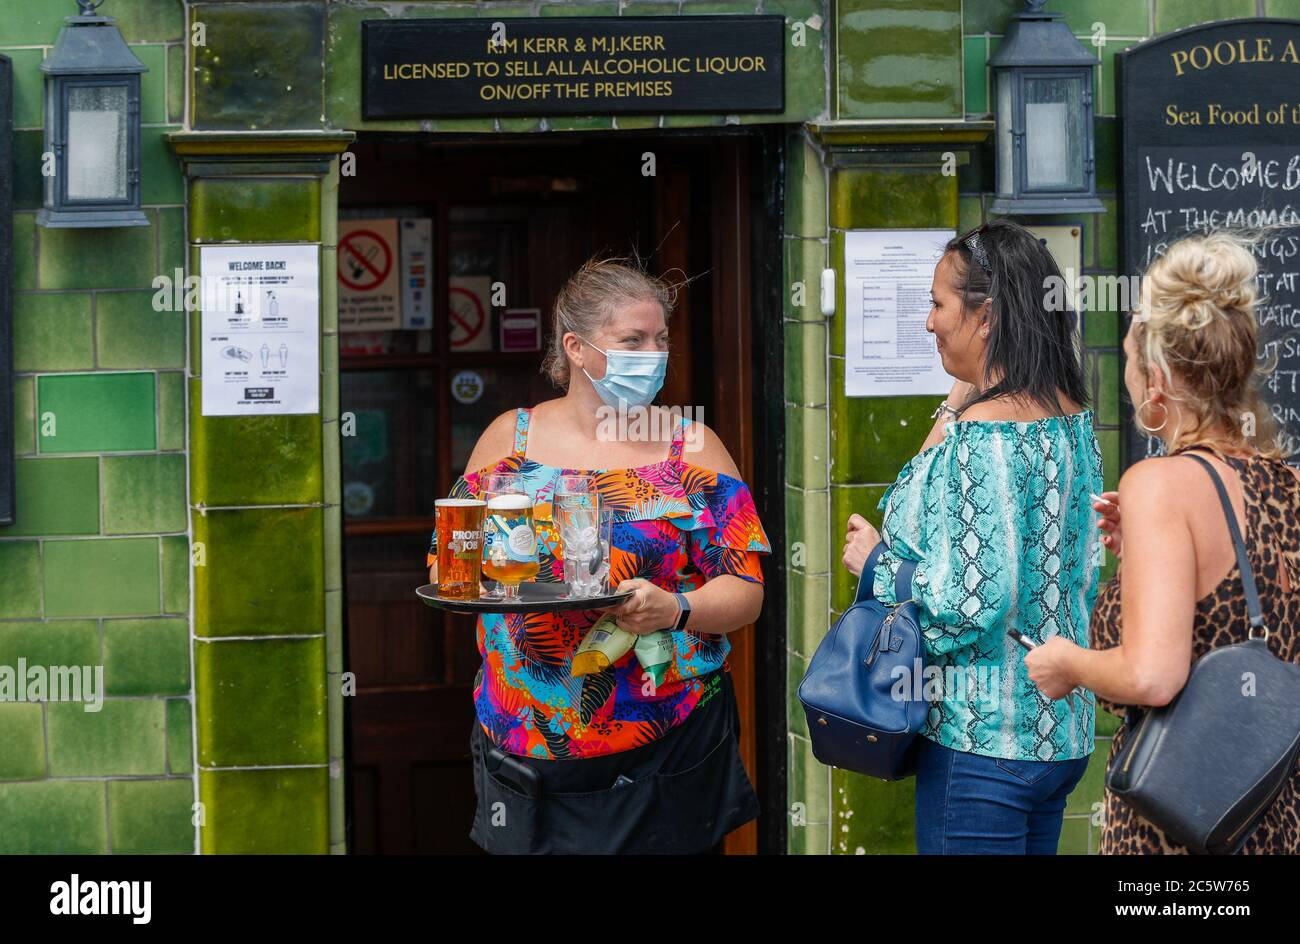 Poole, UK. 5th July 2020. Michelle Kerr, landlady at the Poole Arms on a bustling Poole Quay, Dorset as cafes and pubs reopened this weekend . Credit: Richard Crease/Alamy Live News Stock Photo